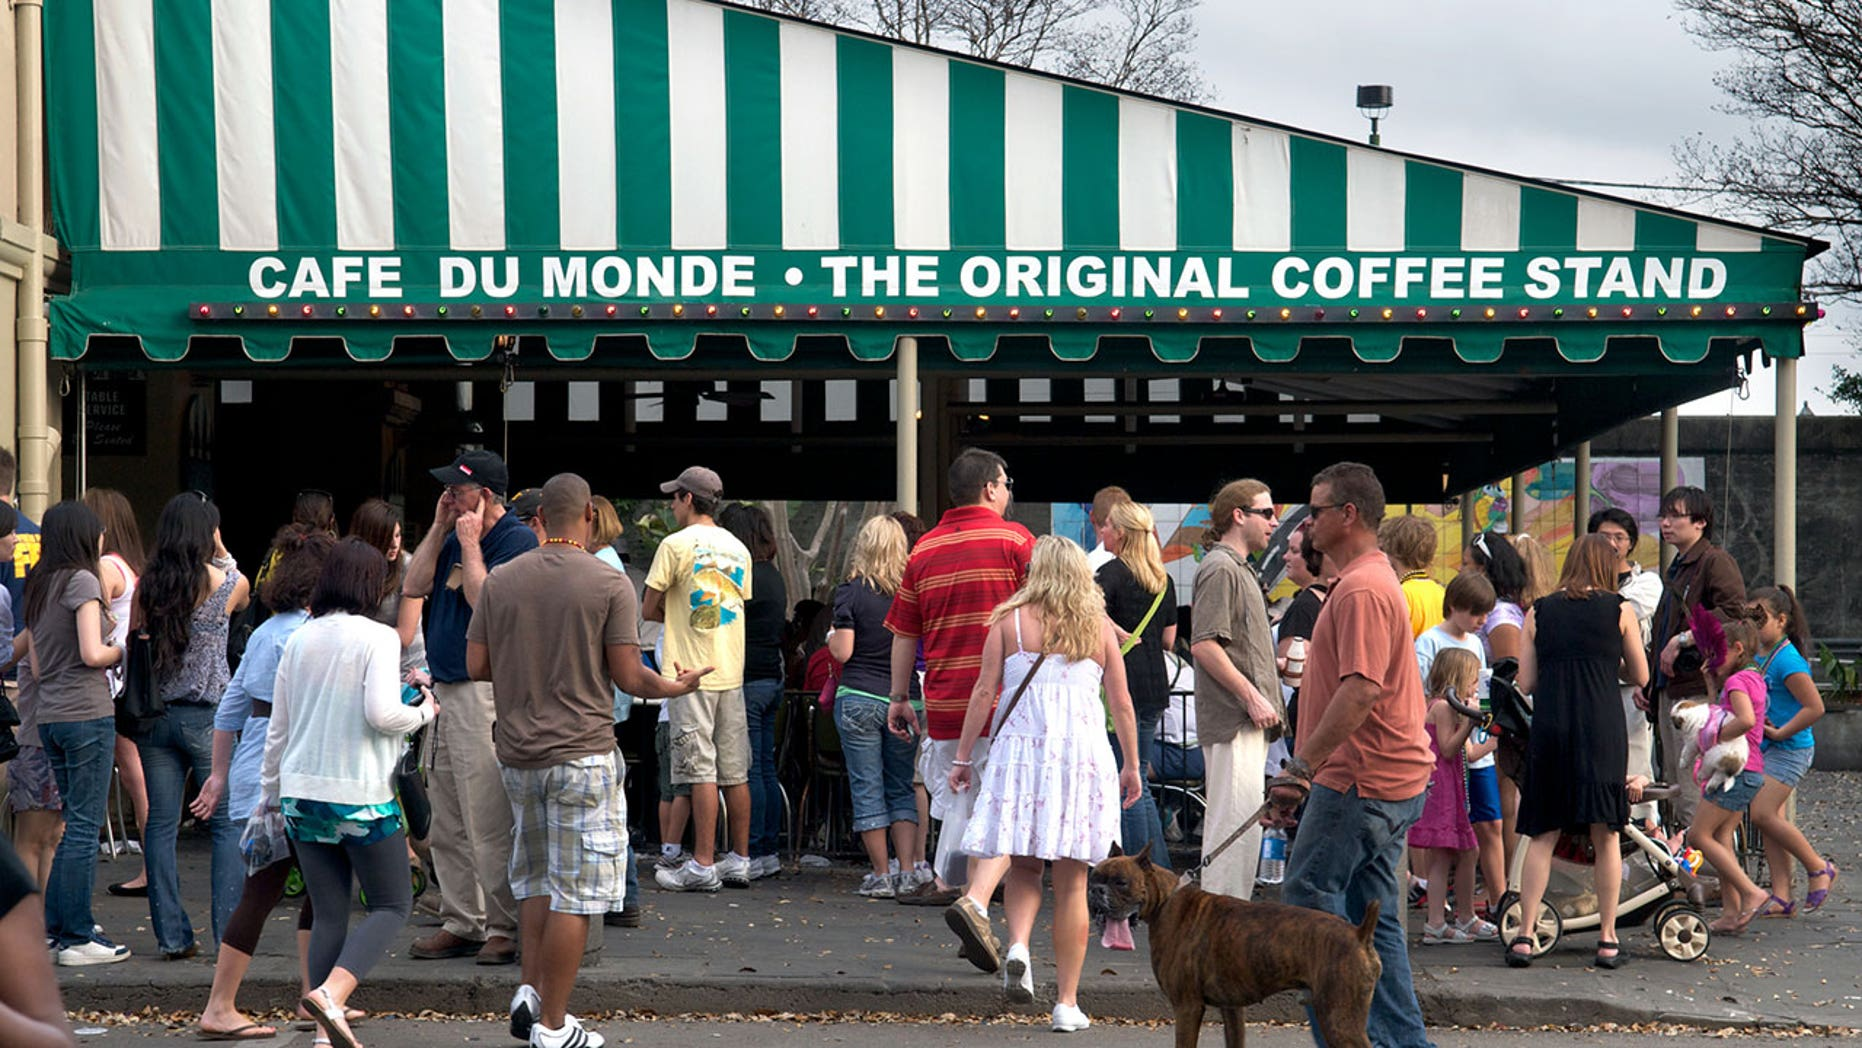 The Cafe Du Monde in New Orleans has cracked Instagram's 2017 list of the most photographed eateries.